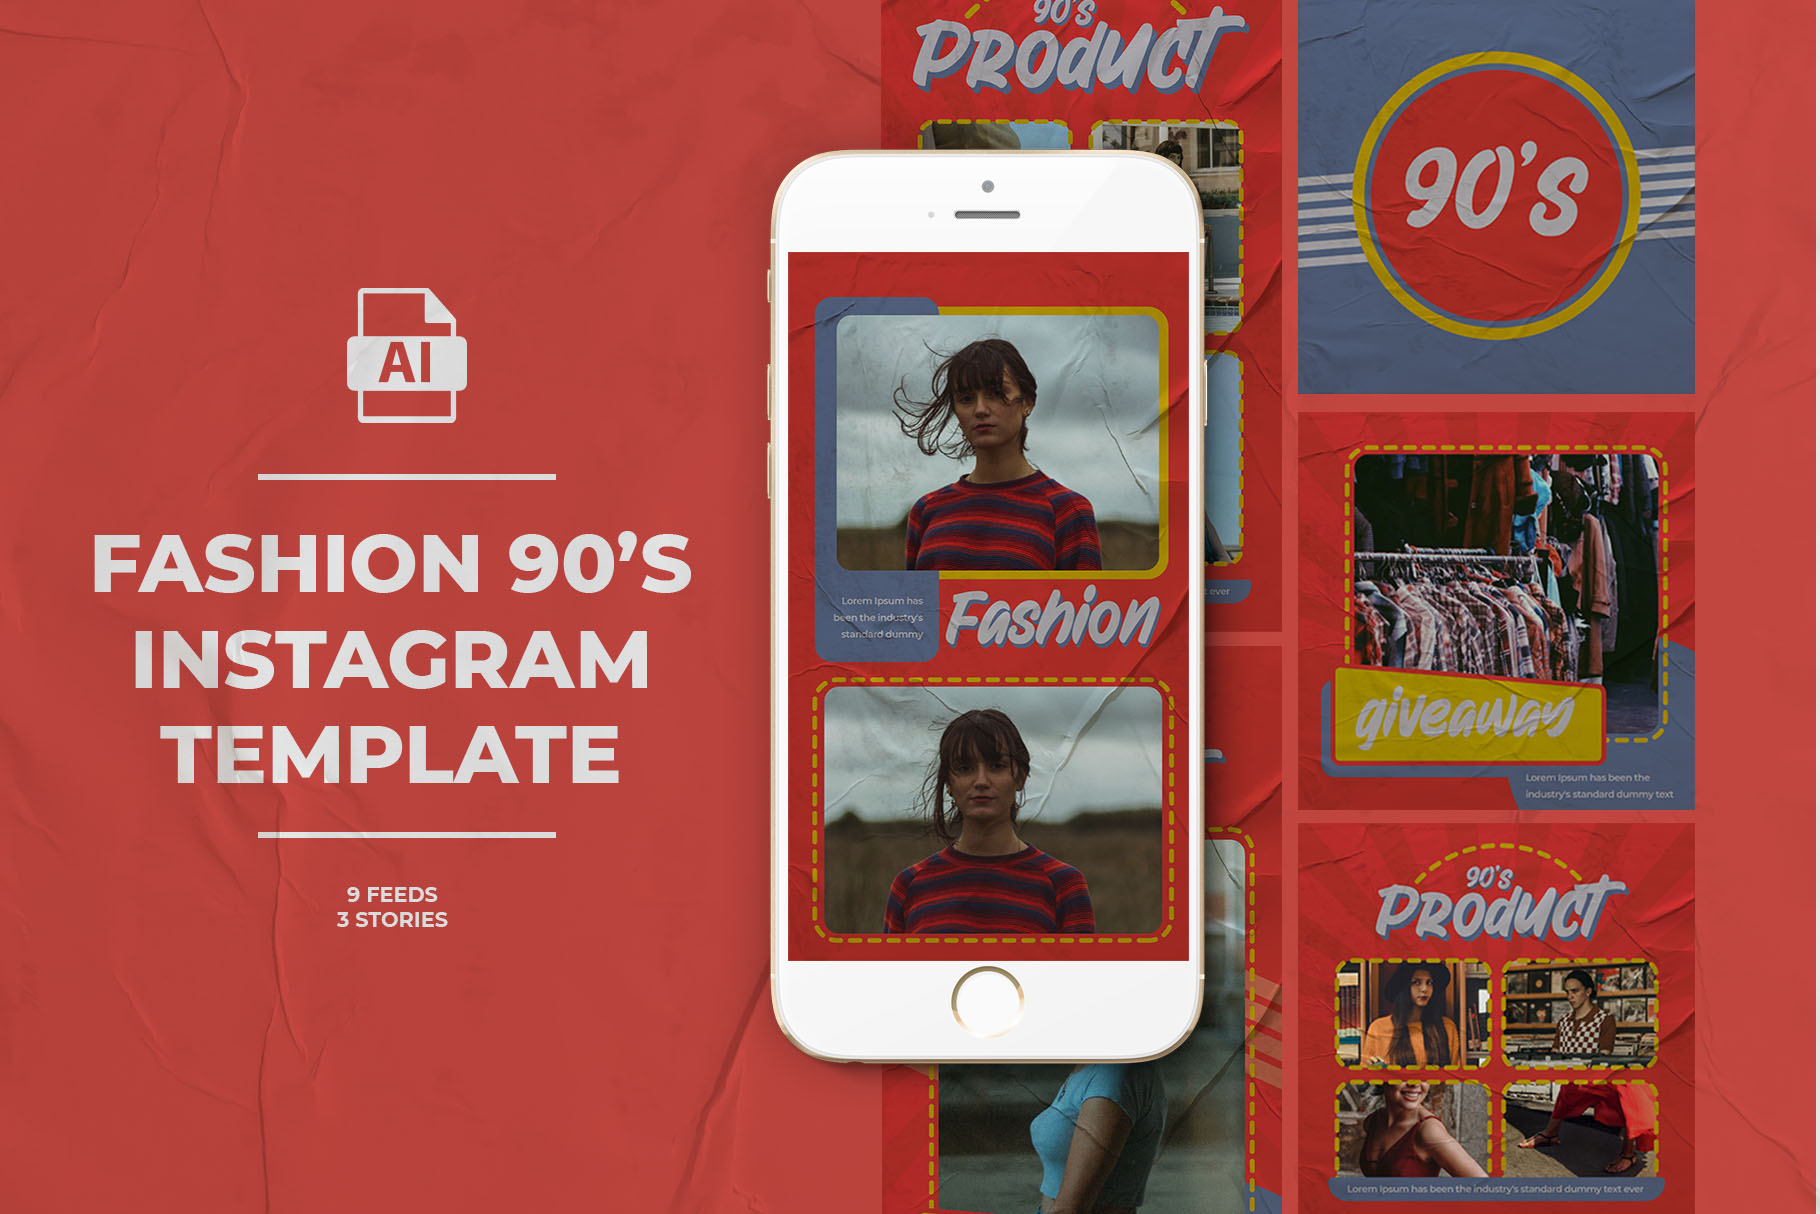 Fashion 90's Instagram Templates example image 1